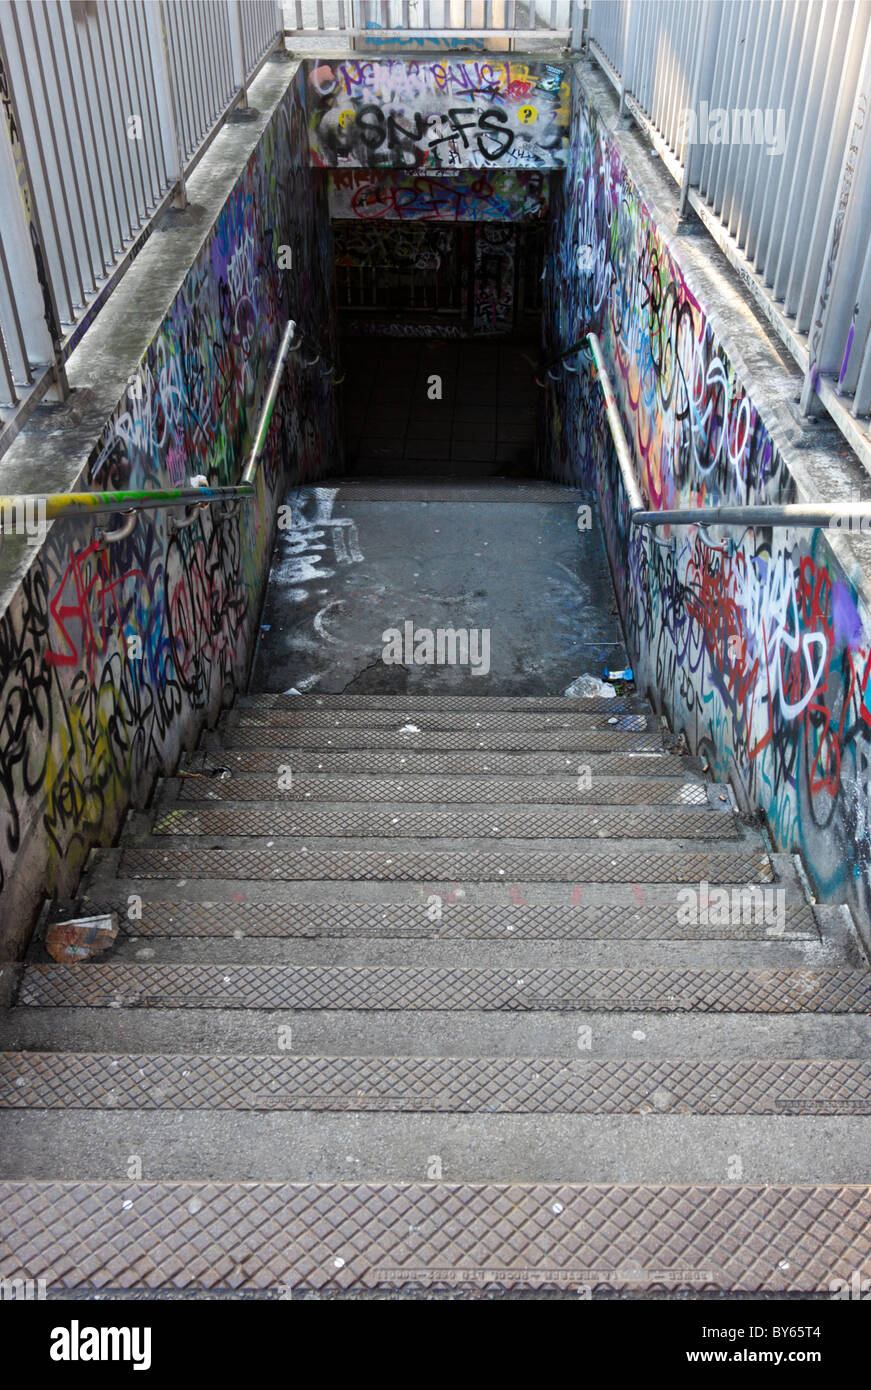 Graffiti d'escalier à la gare de Waterloo. Photo Stock